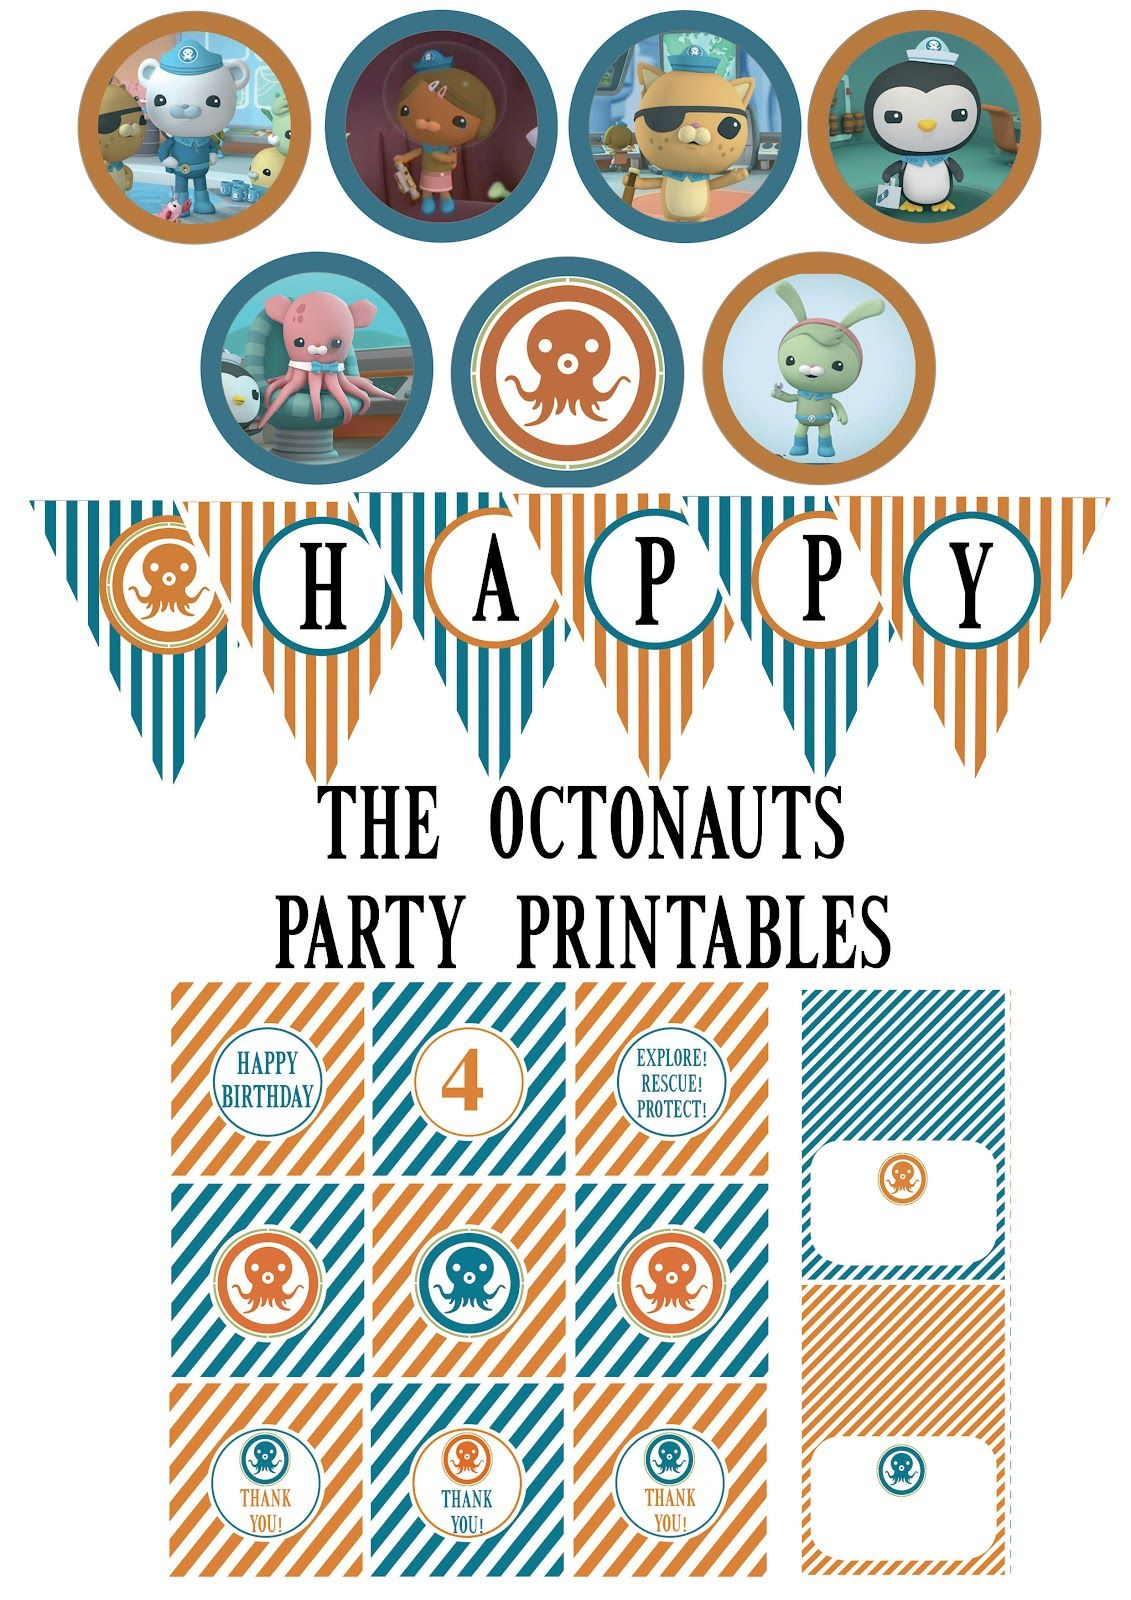 Octonauts+Party+Printables.jpg 1,131×1,600 ピクセル